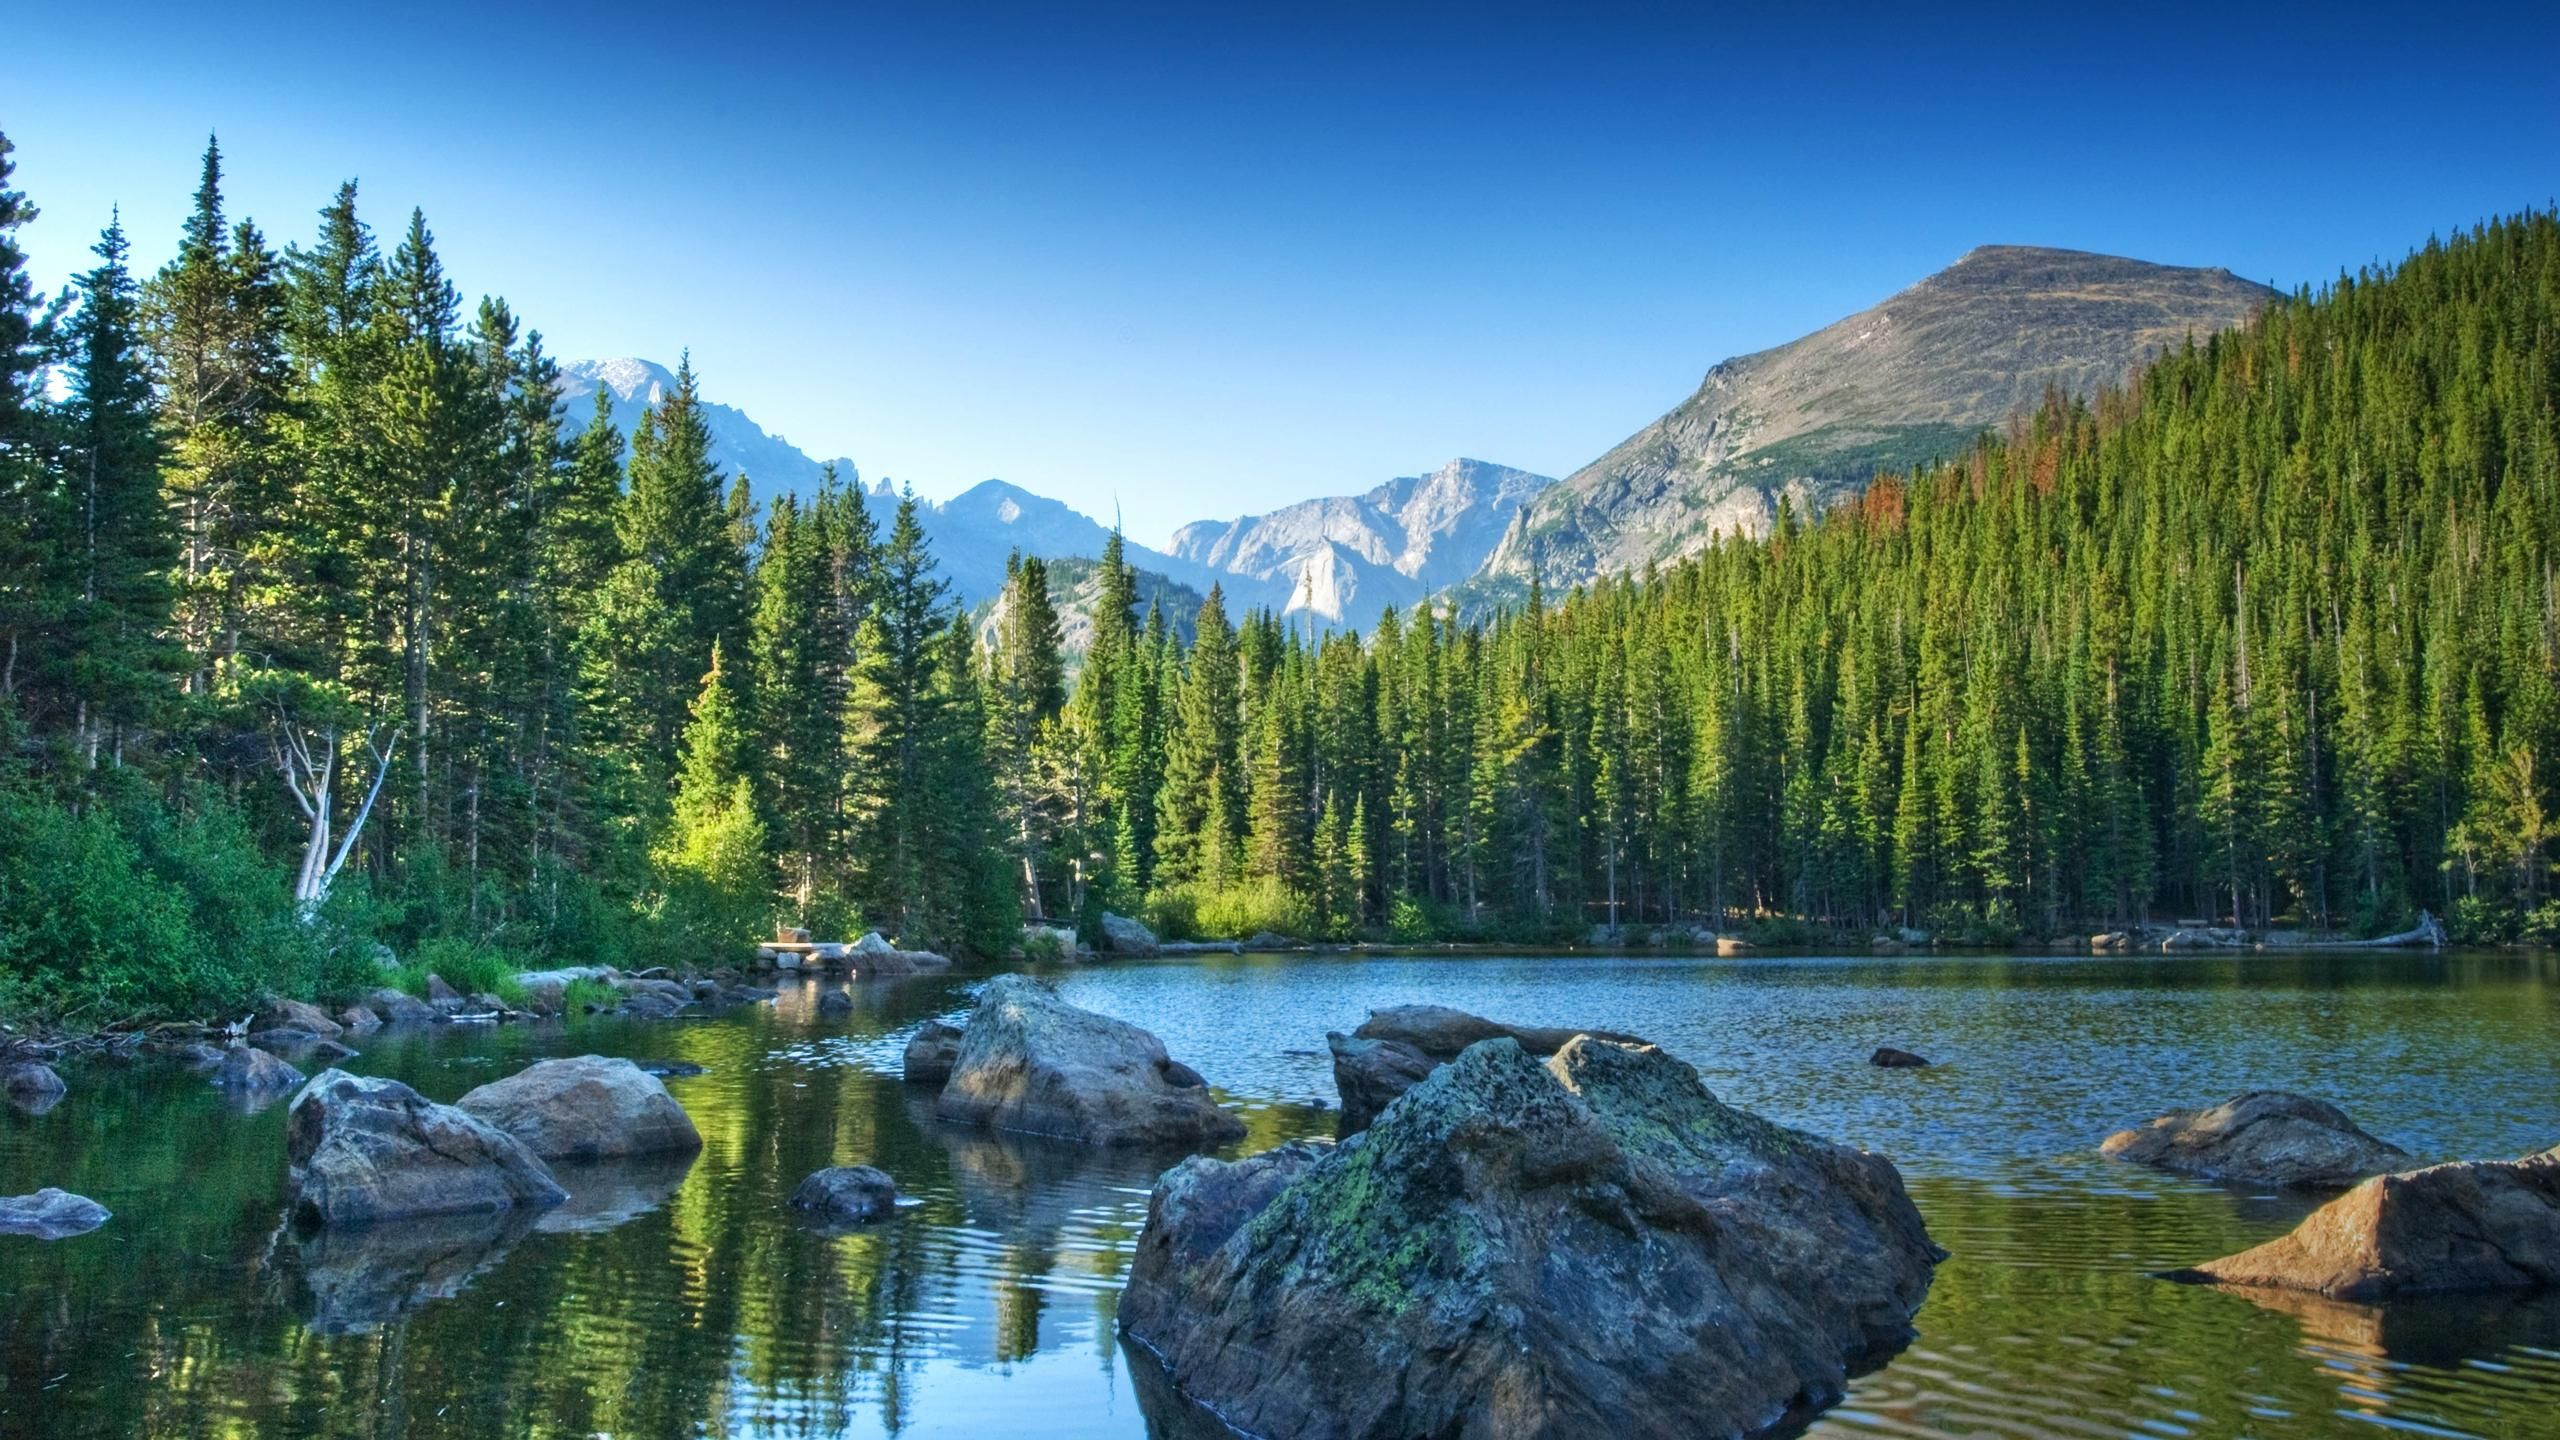 HD Rocky Mountain National Park Wallpaper Live Rocky